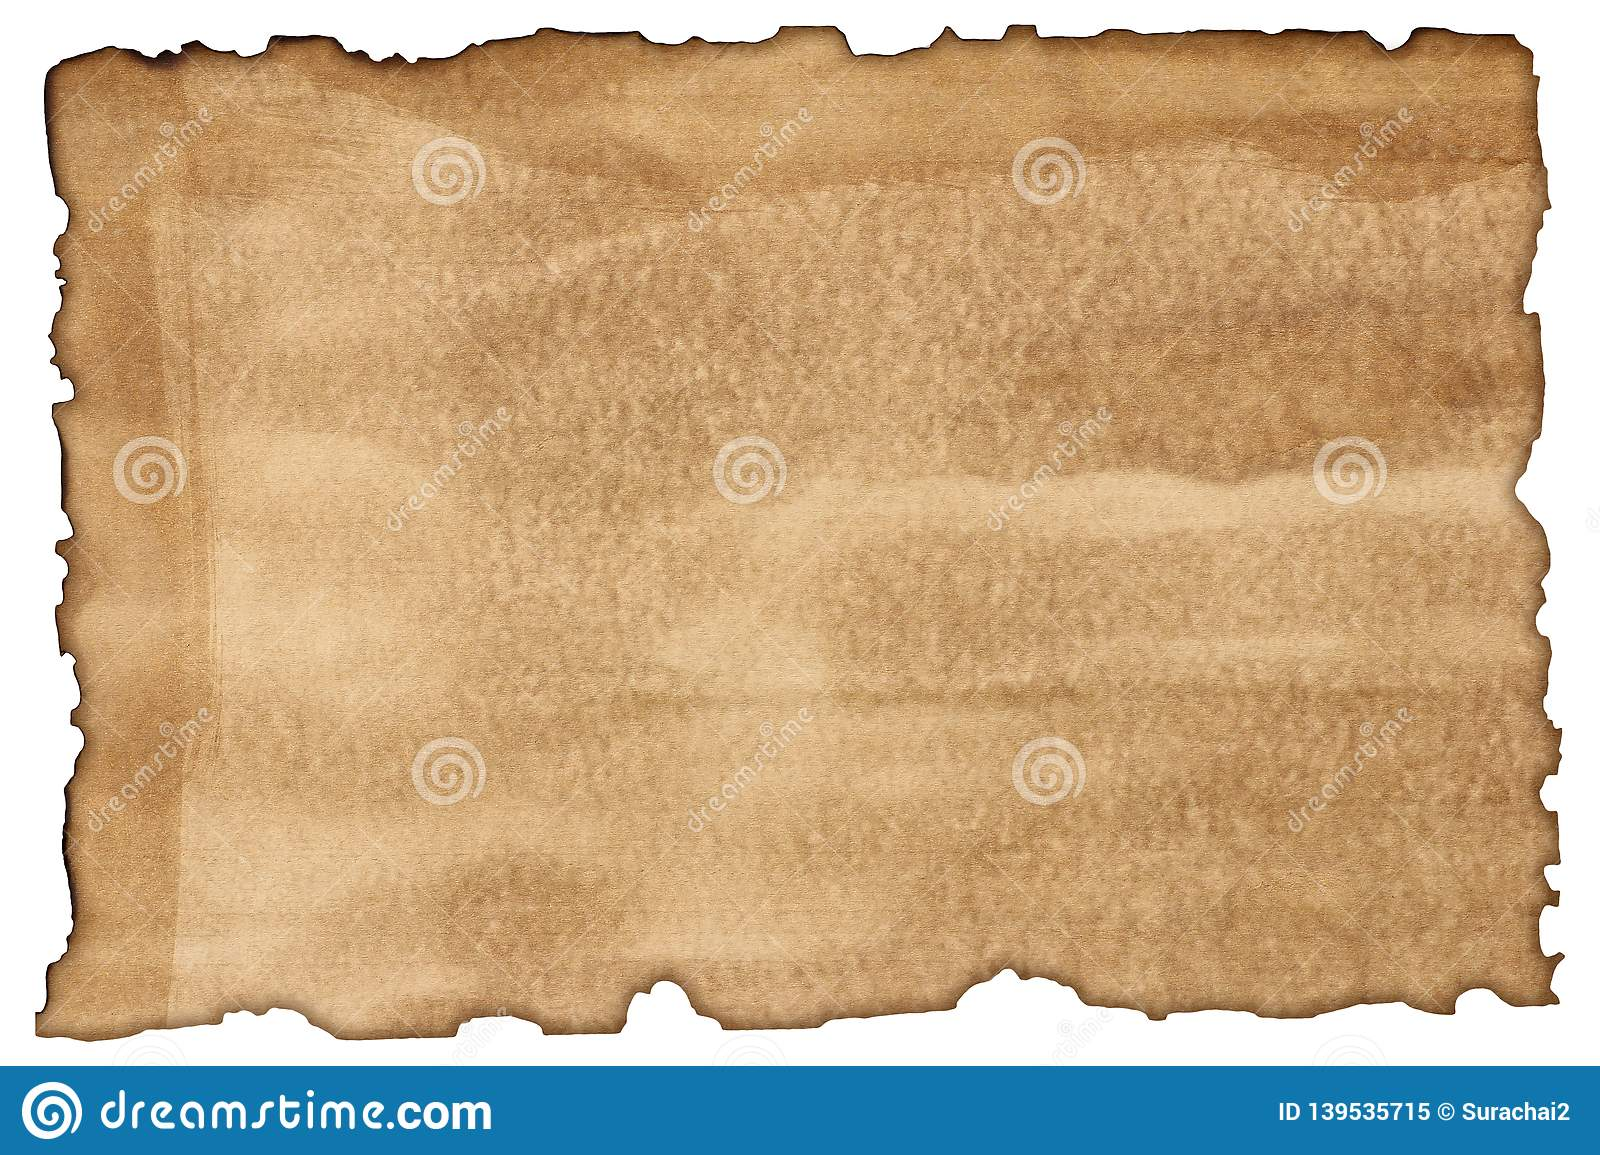 Old Paper Texture. Vintage Paper Background Or Texture Stock Image - Image  of color, carton: 139535715